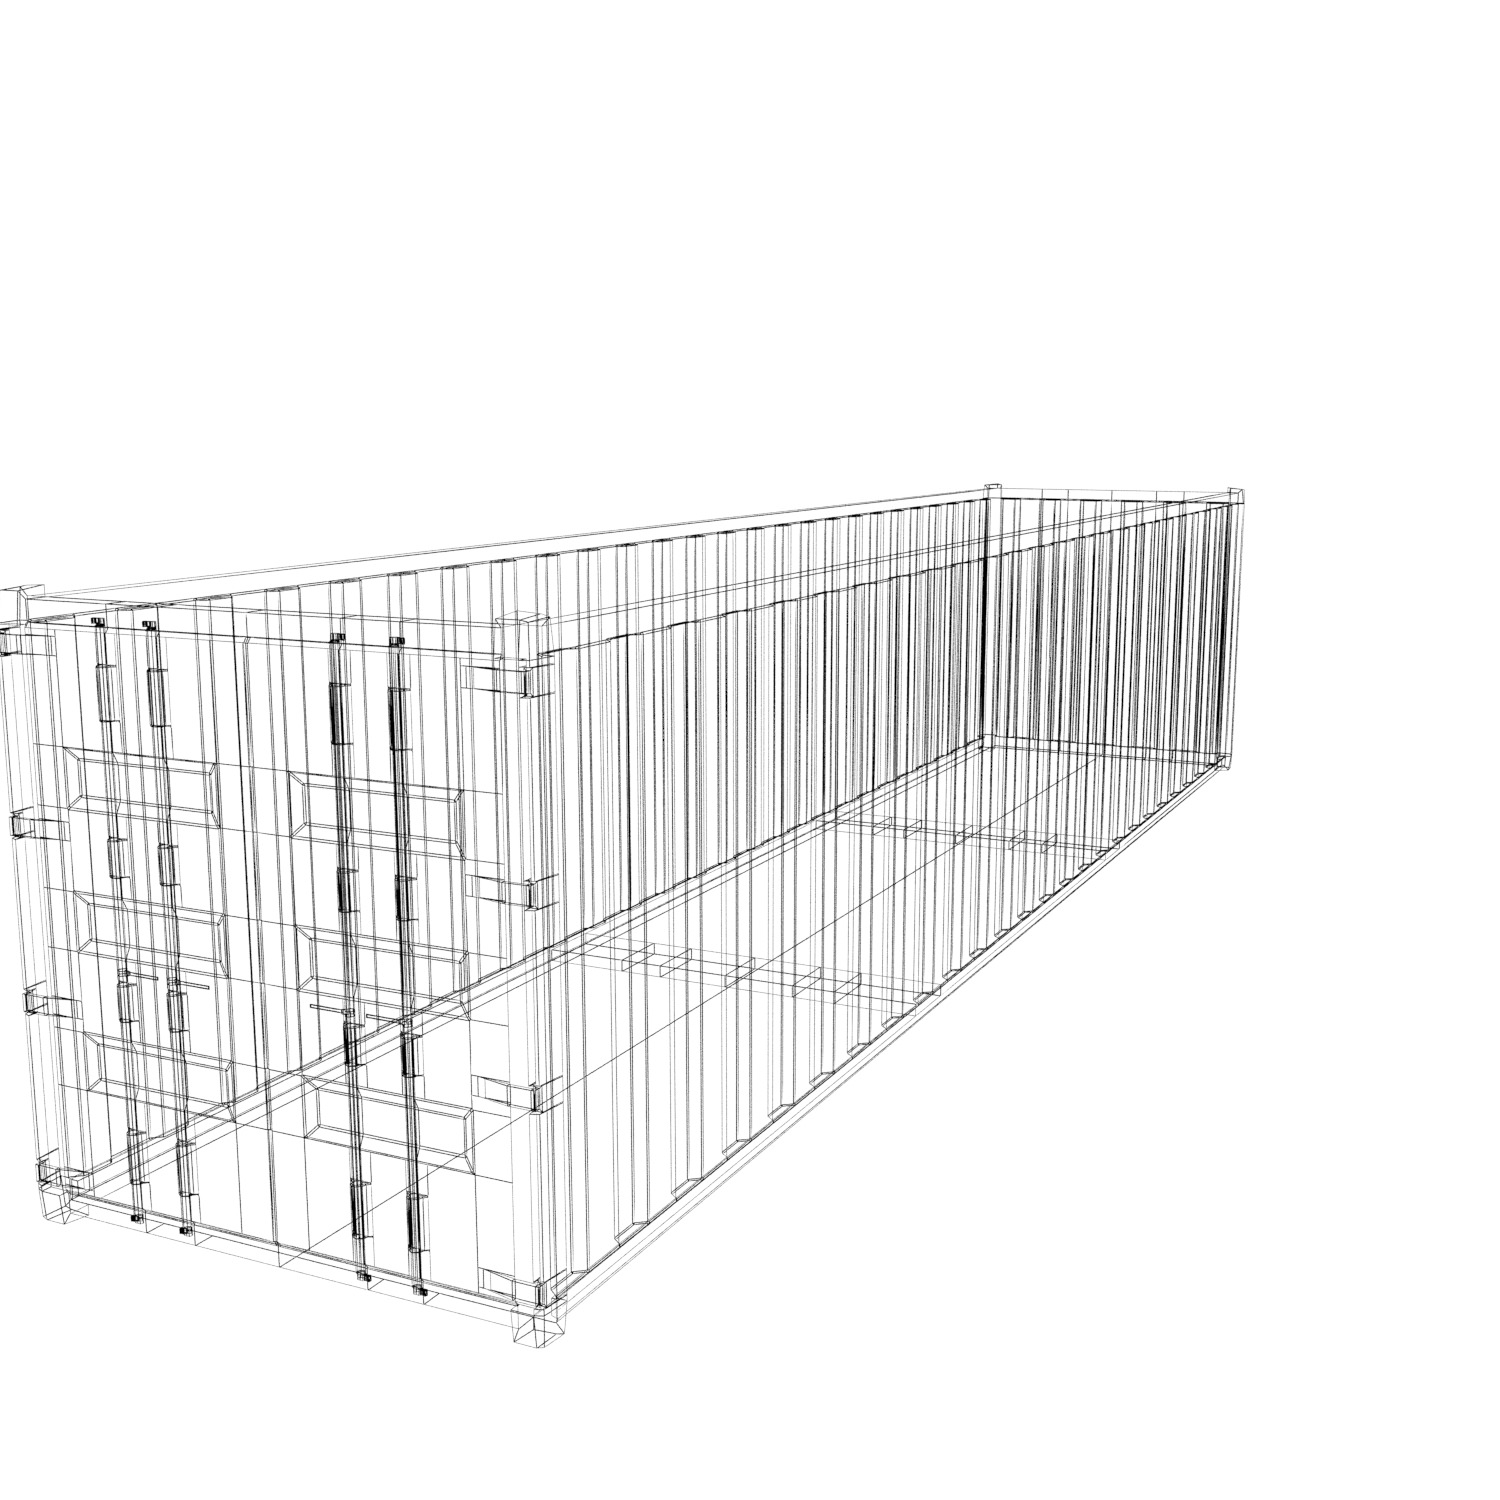 40 Ft Sea Container Free 3d Model Game Ready X Obj